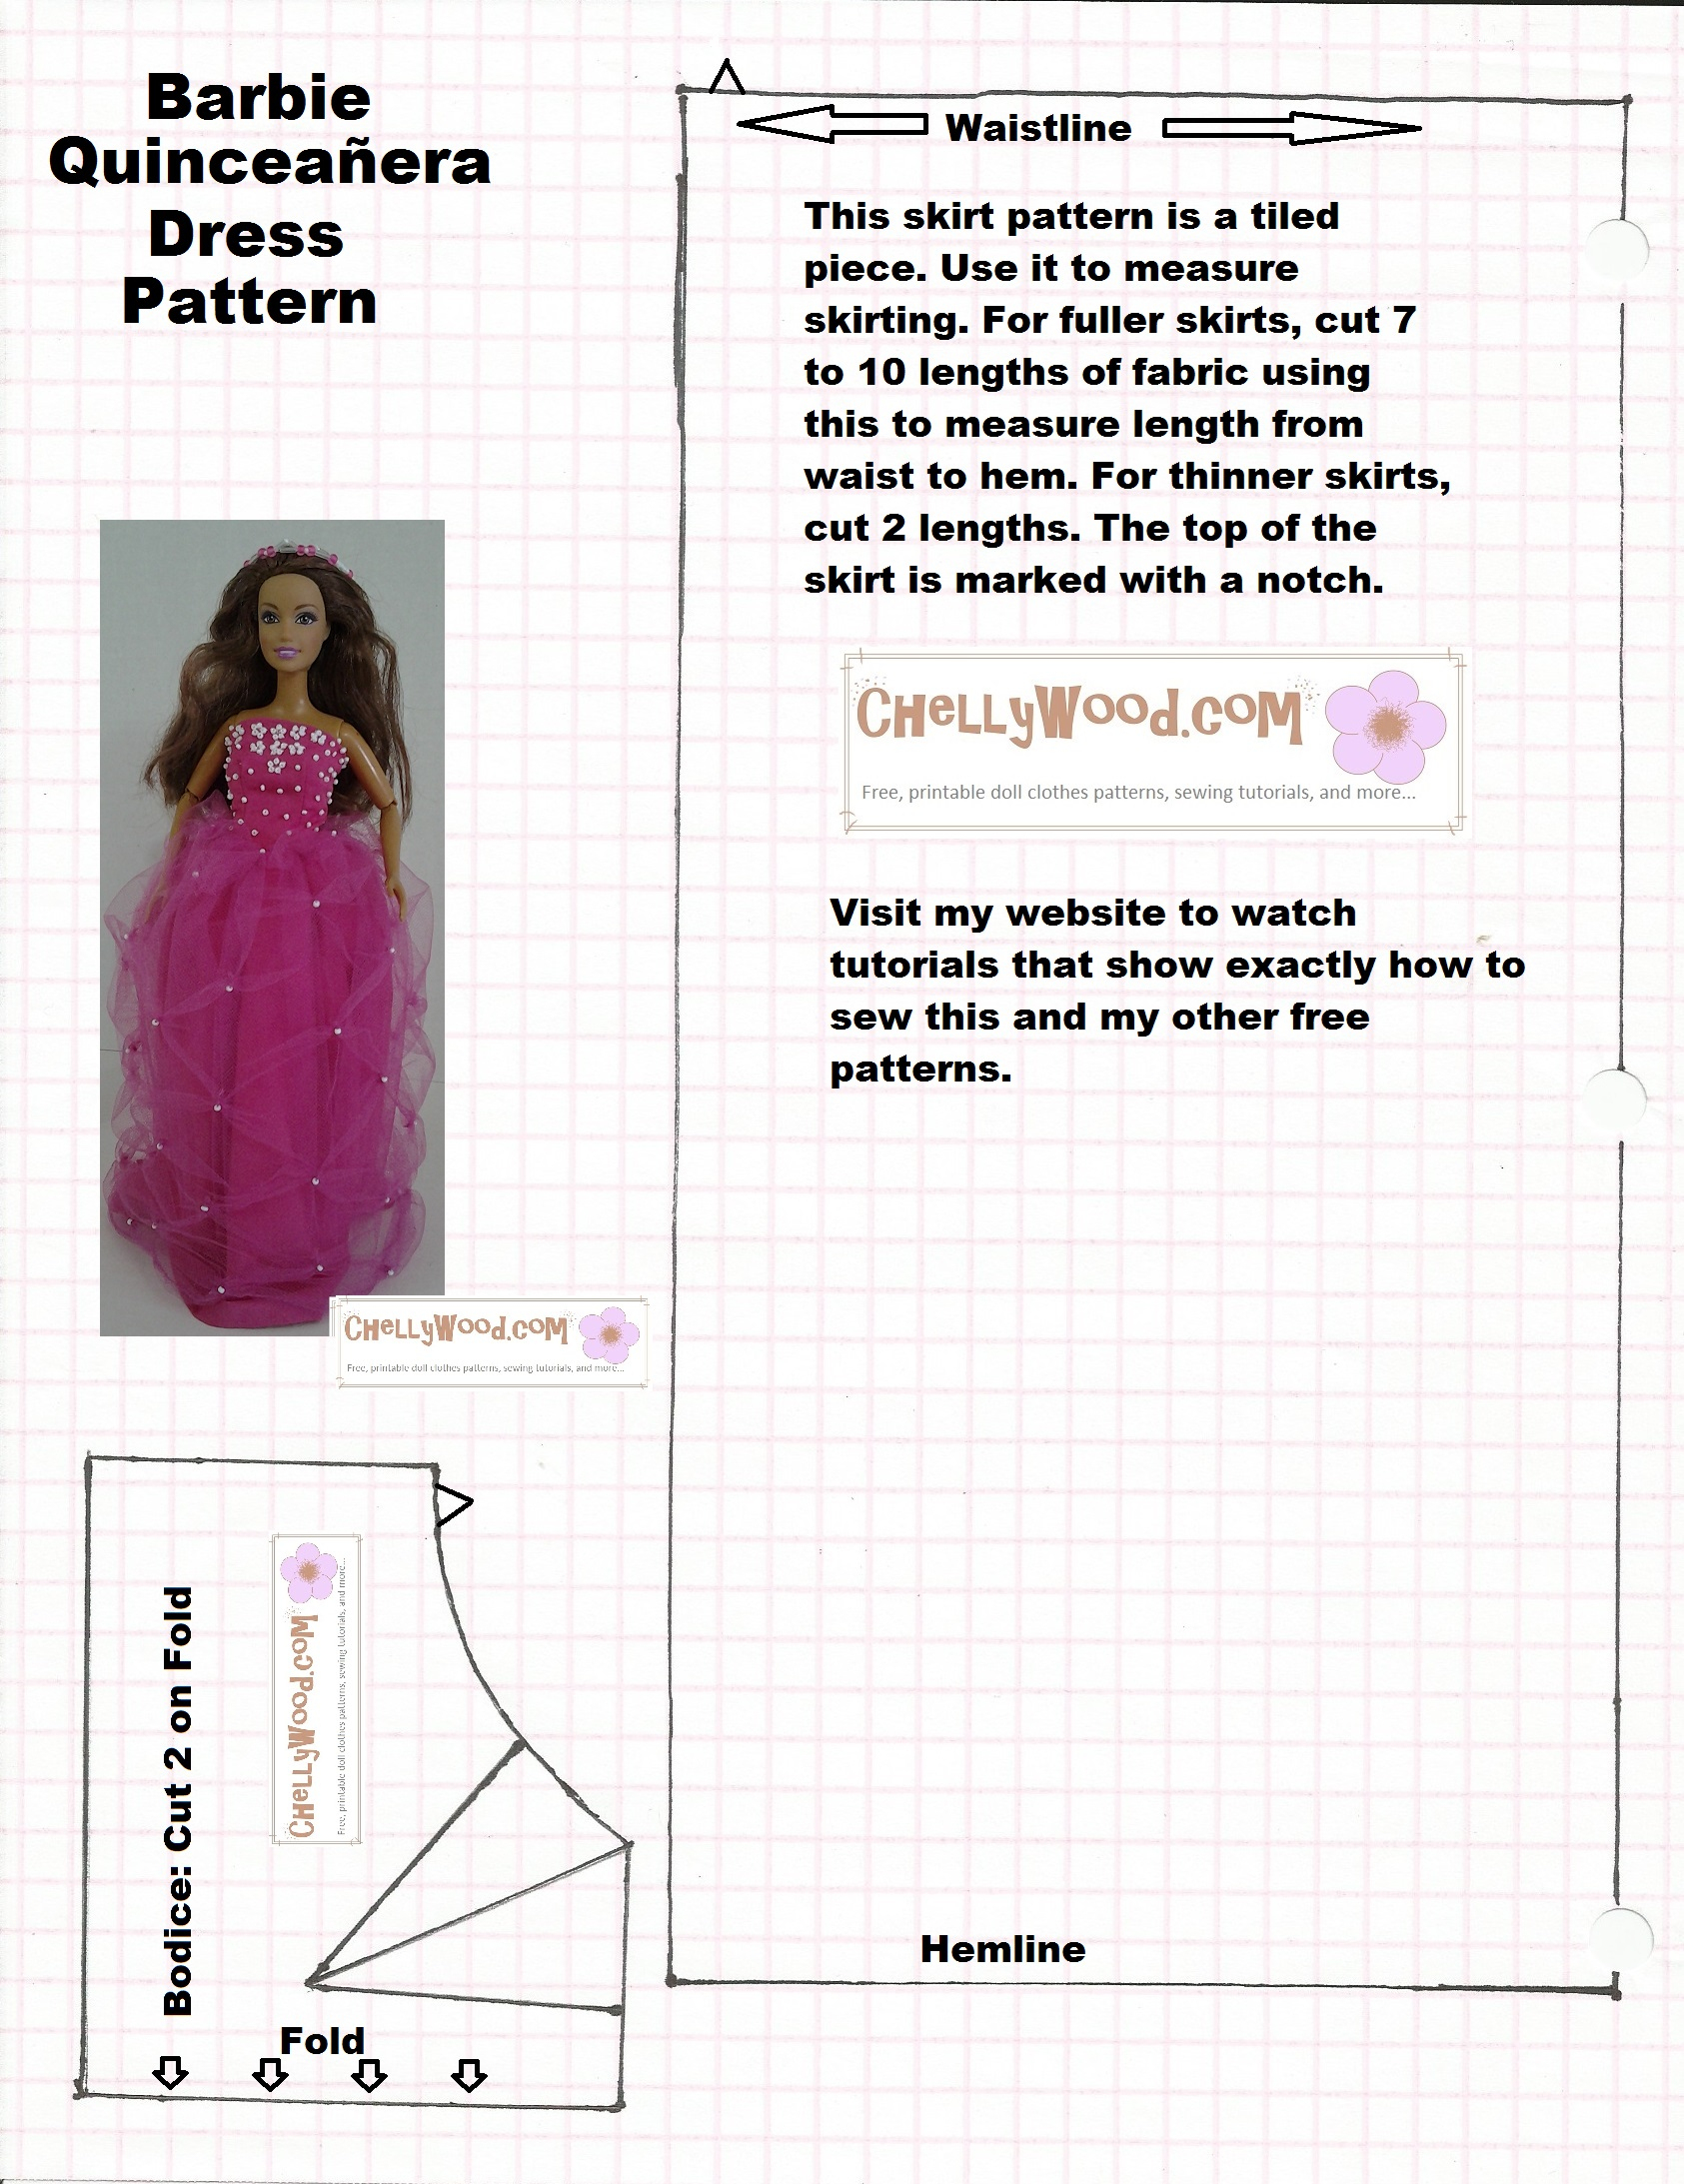 Old Pattern Page – Chellywood - Free Printable Patterns For Sewing Doll Clothes